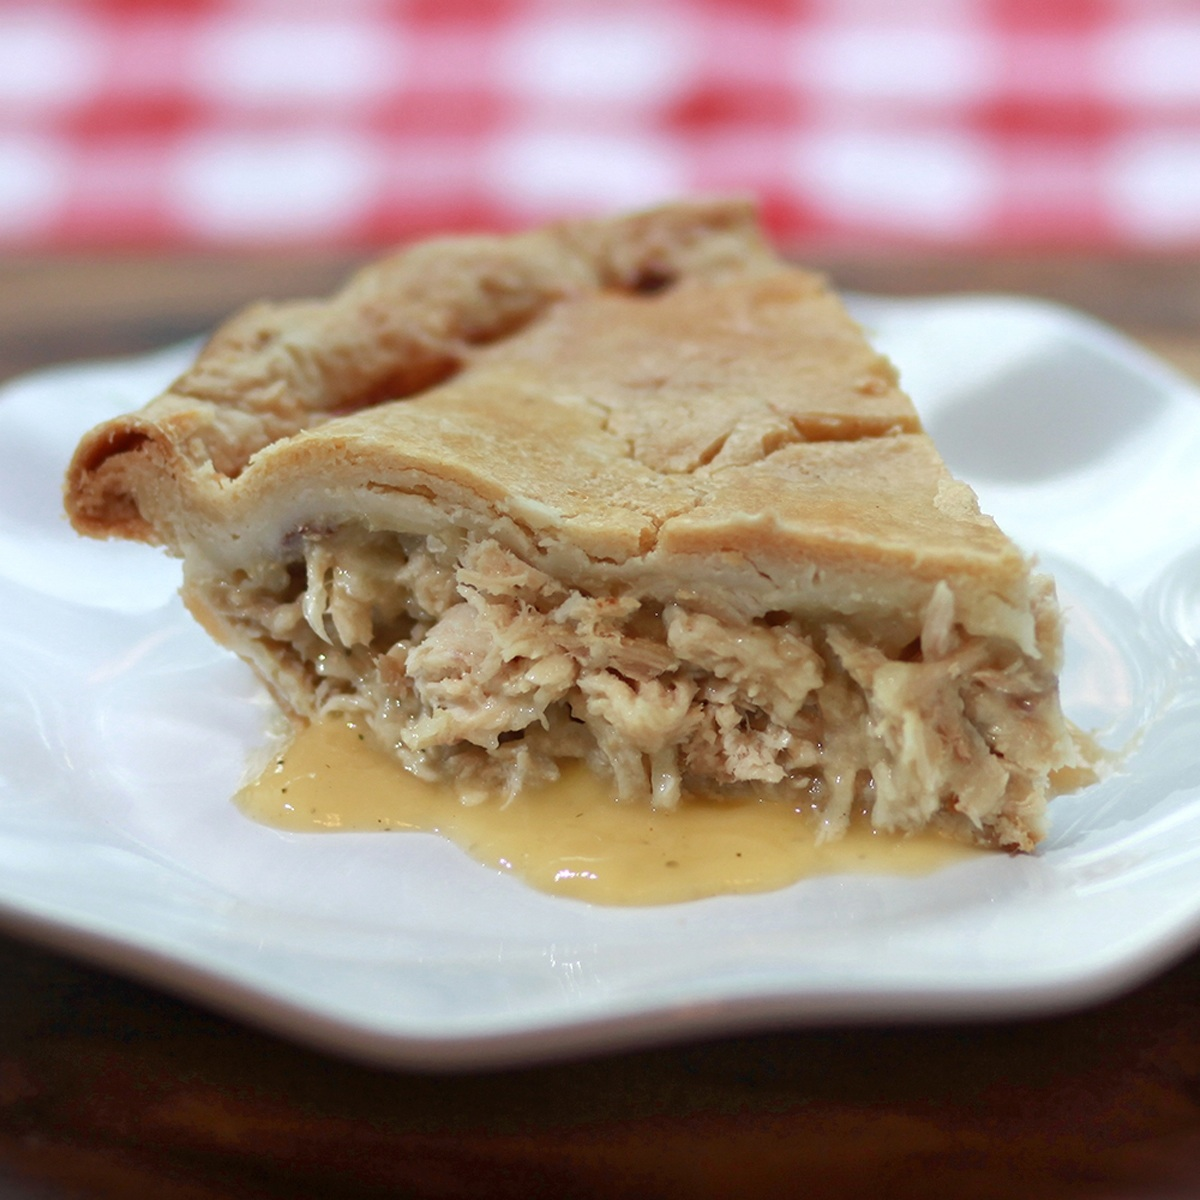 Centerville Pie Co. in Centerville, Mass. (Cape Cod) is know for its delicious chicken pies